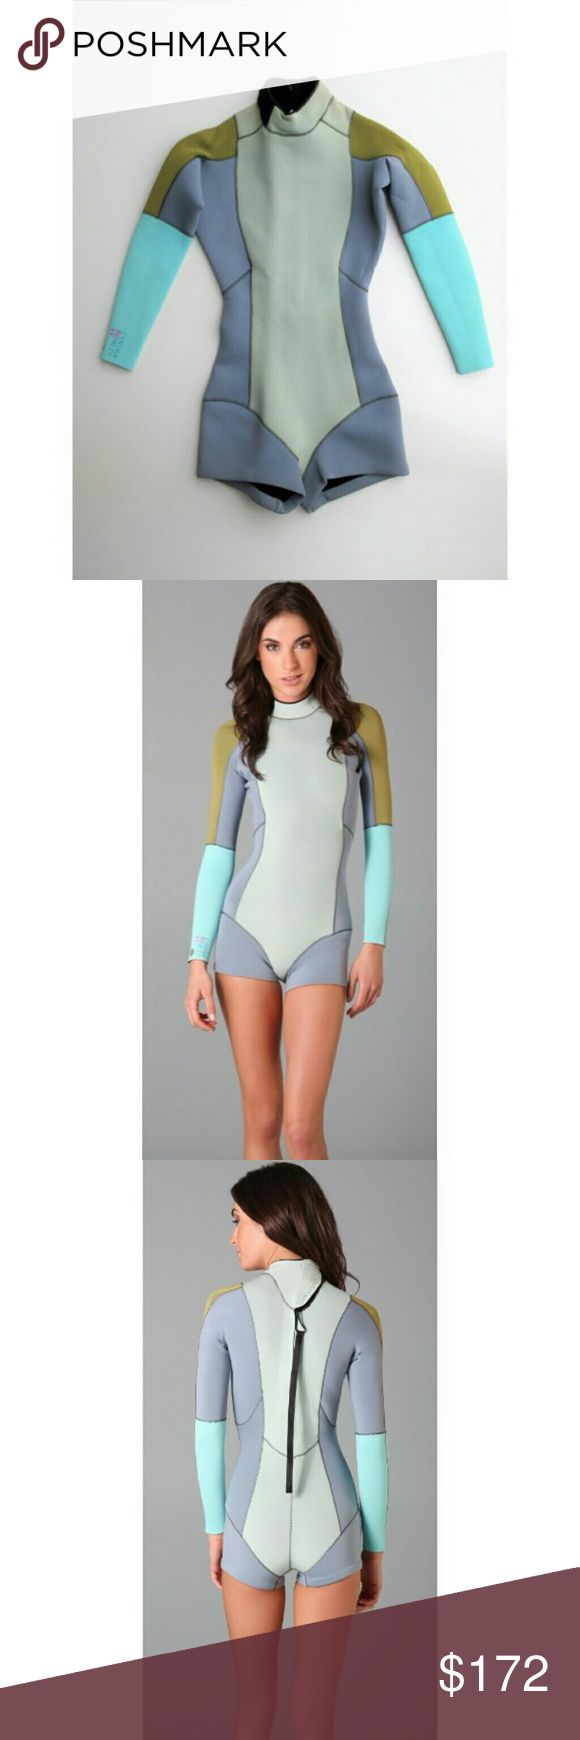 Color Block Spring Wetsuit 2/30 NWT This fiber-lite neoprene wetsuit features contrast topstitching at the bonded, color block nylon panels. Velcro® closure at collar. Hidden zip closure and hidden zip pocket at back. Long sleeves. Glued and back stitched (GBS) seams - New with Tags - Film Set Wardrobe - Never Worn - Minor Signs of Handling (Creasing/ Dust) Nothing Notable  - Visit RubyandSofia.com for more info -  Chest - 16 +/- Hips -13.25 Length -2.5 / 28 Short Inseam / Back of Neck to…